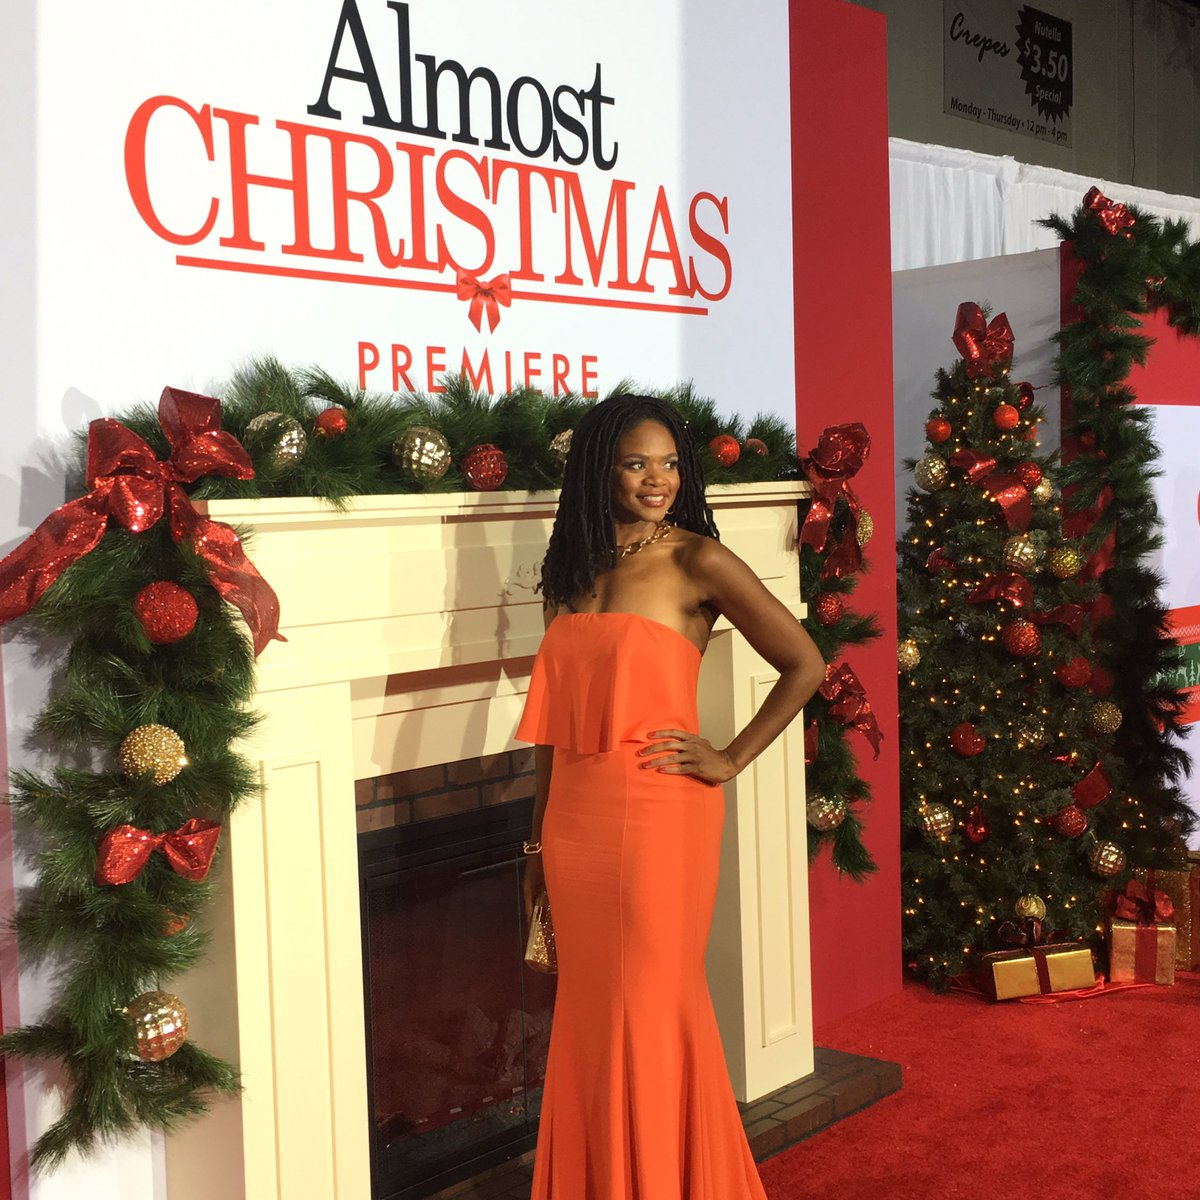 Almost Christmas Cast.Almost Christmas On Twitter The Almostchristmas Cast Is